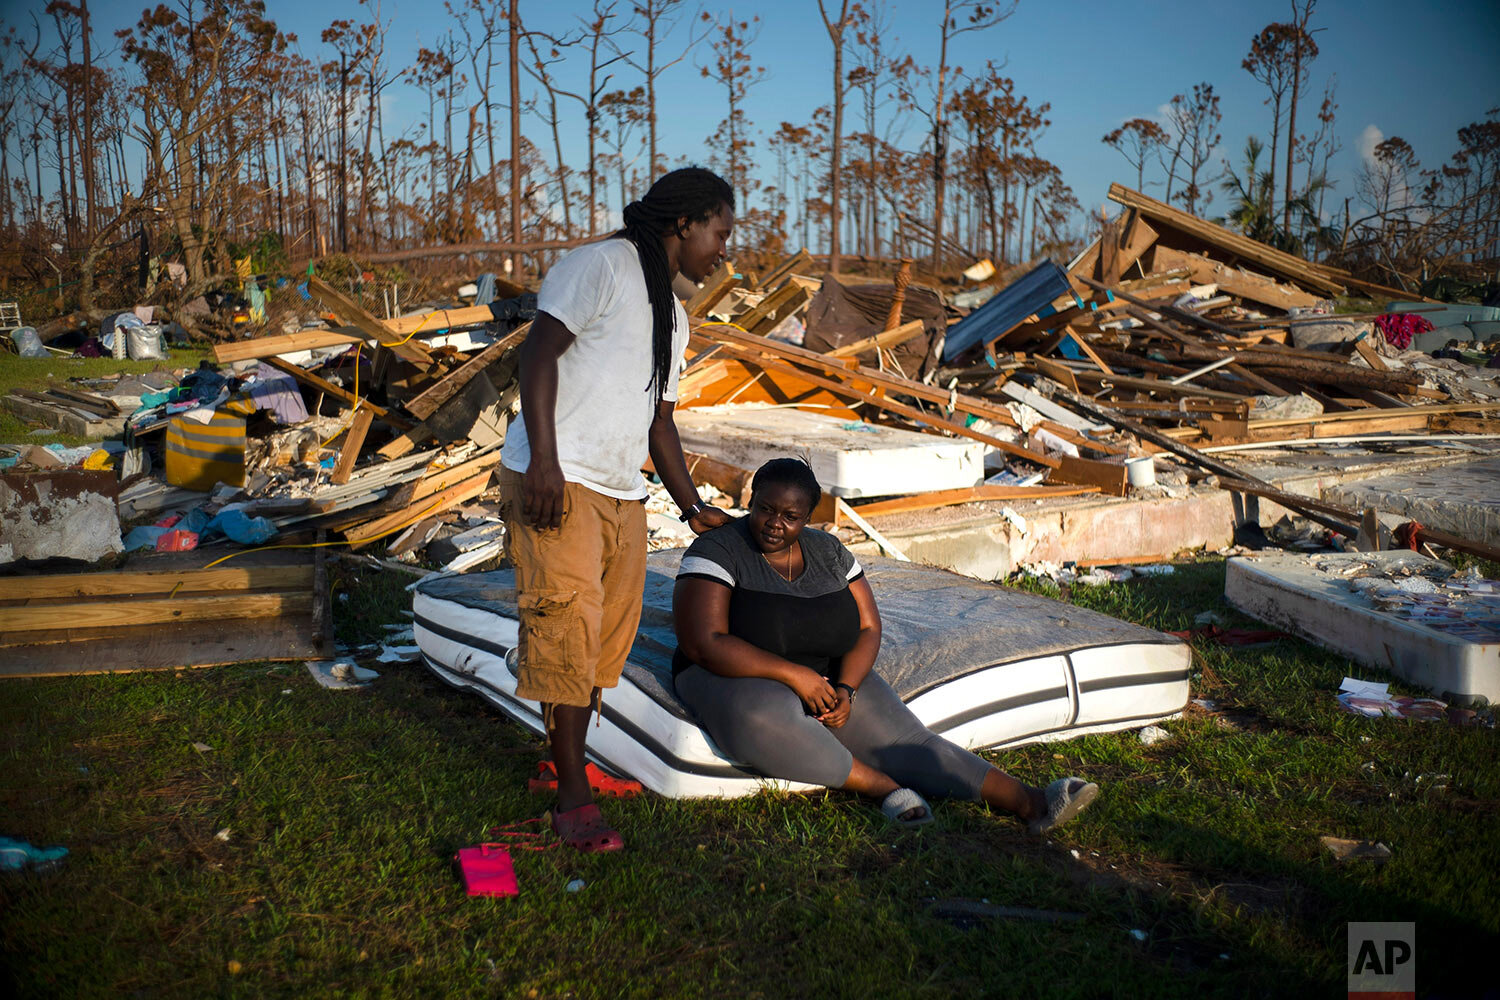 Synobia Reckley pauses on a wet mattress as her husband Dexter Edwards consoles her amid the remains of their home destroyed by Hurricane Dorian in Rocky Creek East End, Grand Bahama, Bahamas, Sunday, Sept. 8, 2019. The couple married two days after Hurricane Mathew hit in 2016 but did not do serious damage. (AP Photo/Ramon Espinosa)